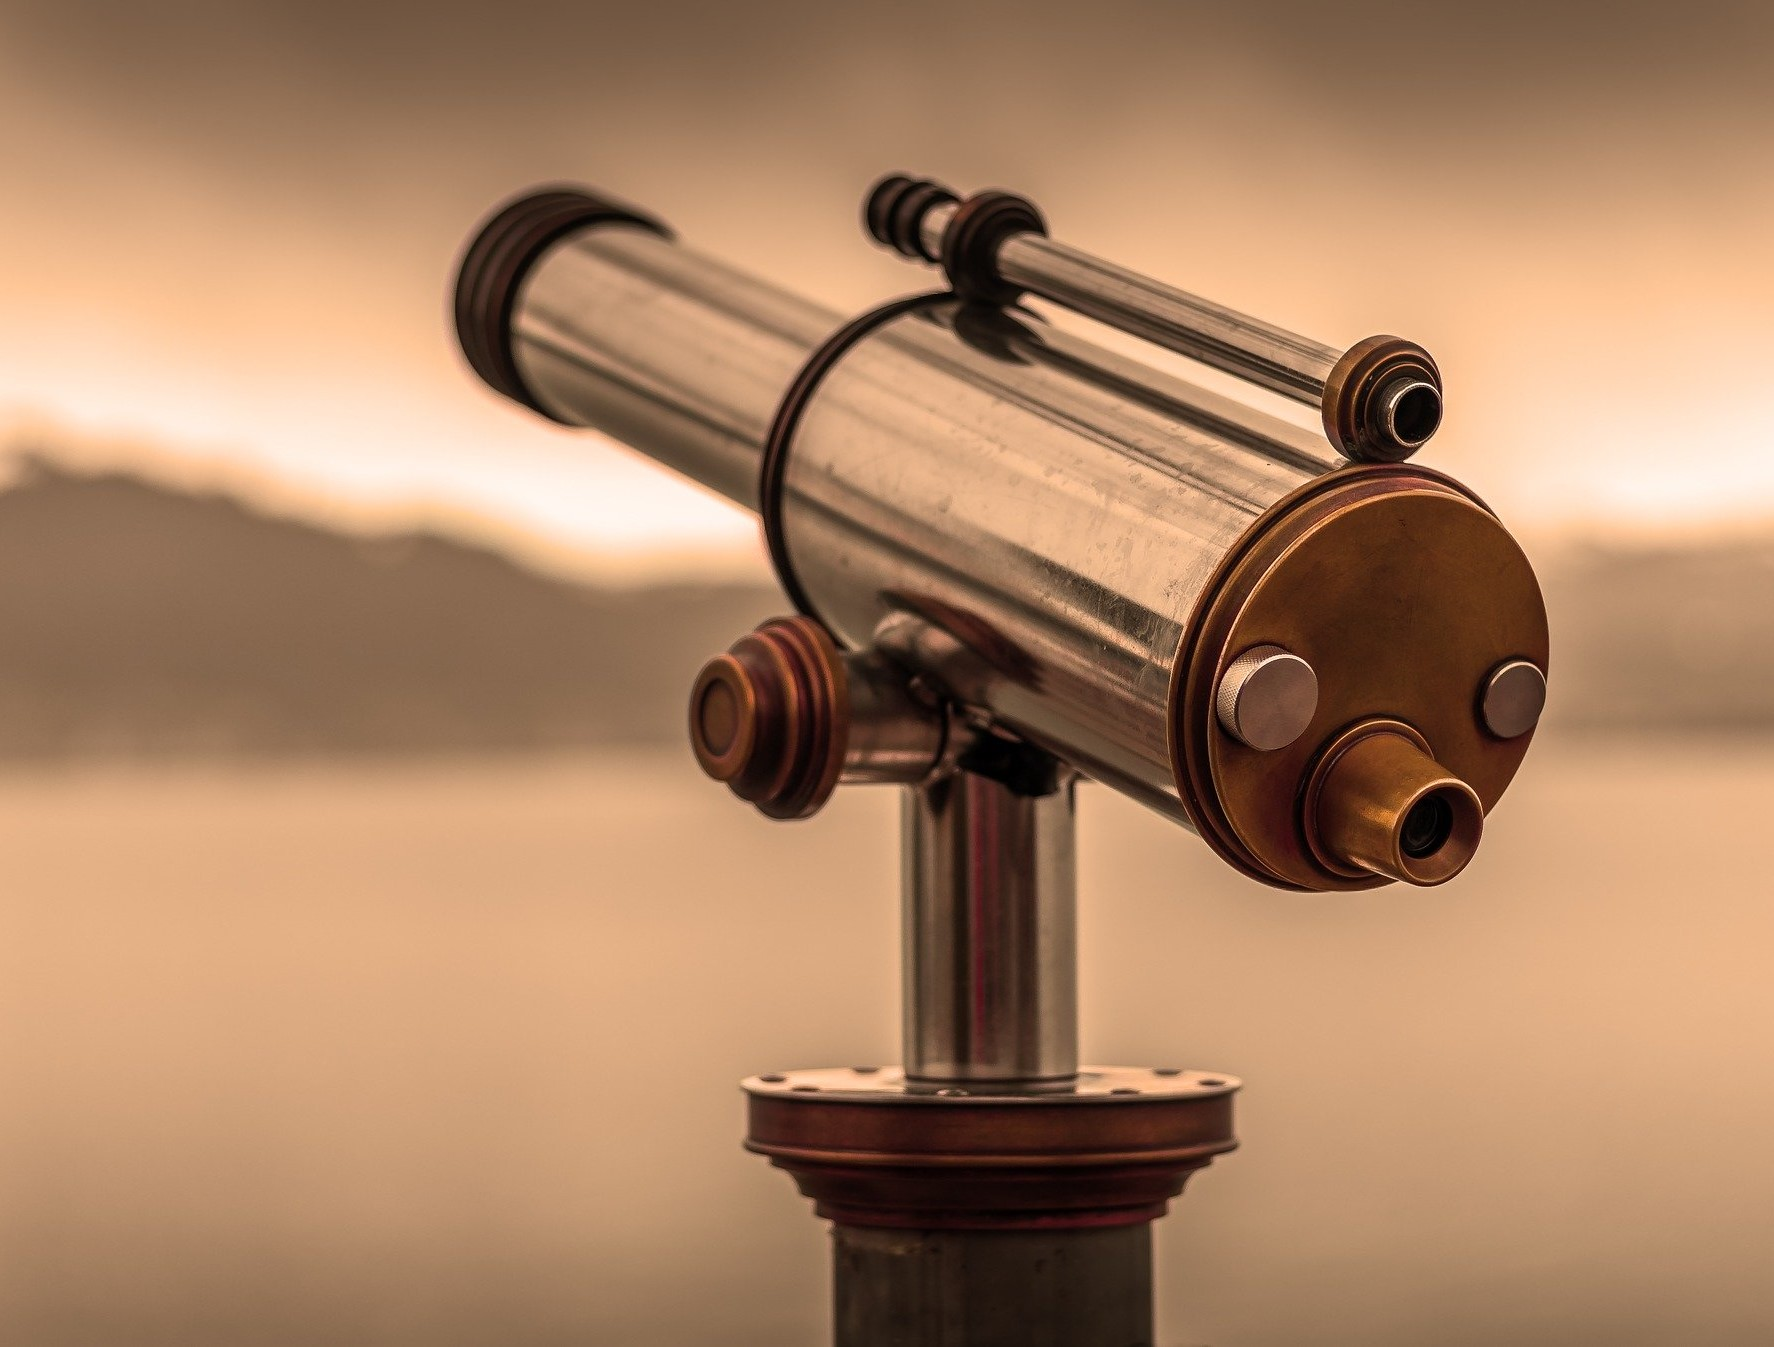 telescope pointed towards mountains